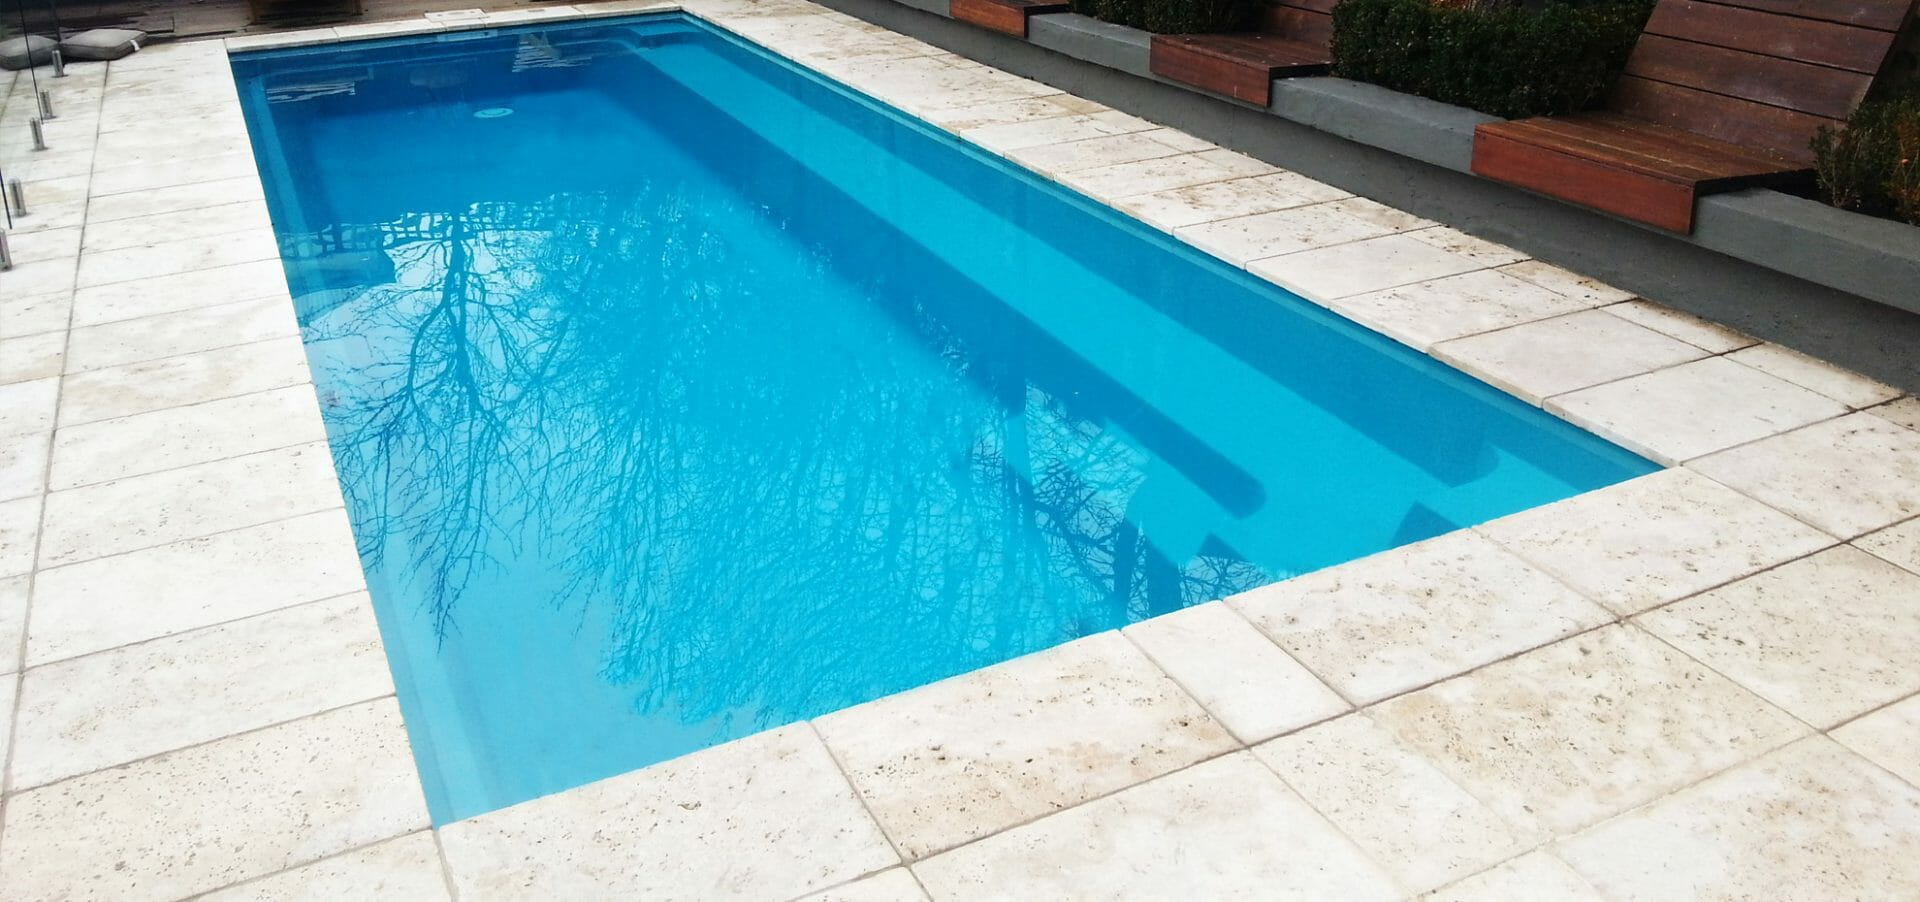 Harmony design fibreglass pool with coping by Leisure Pools